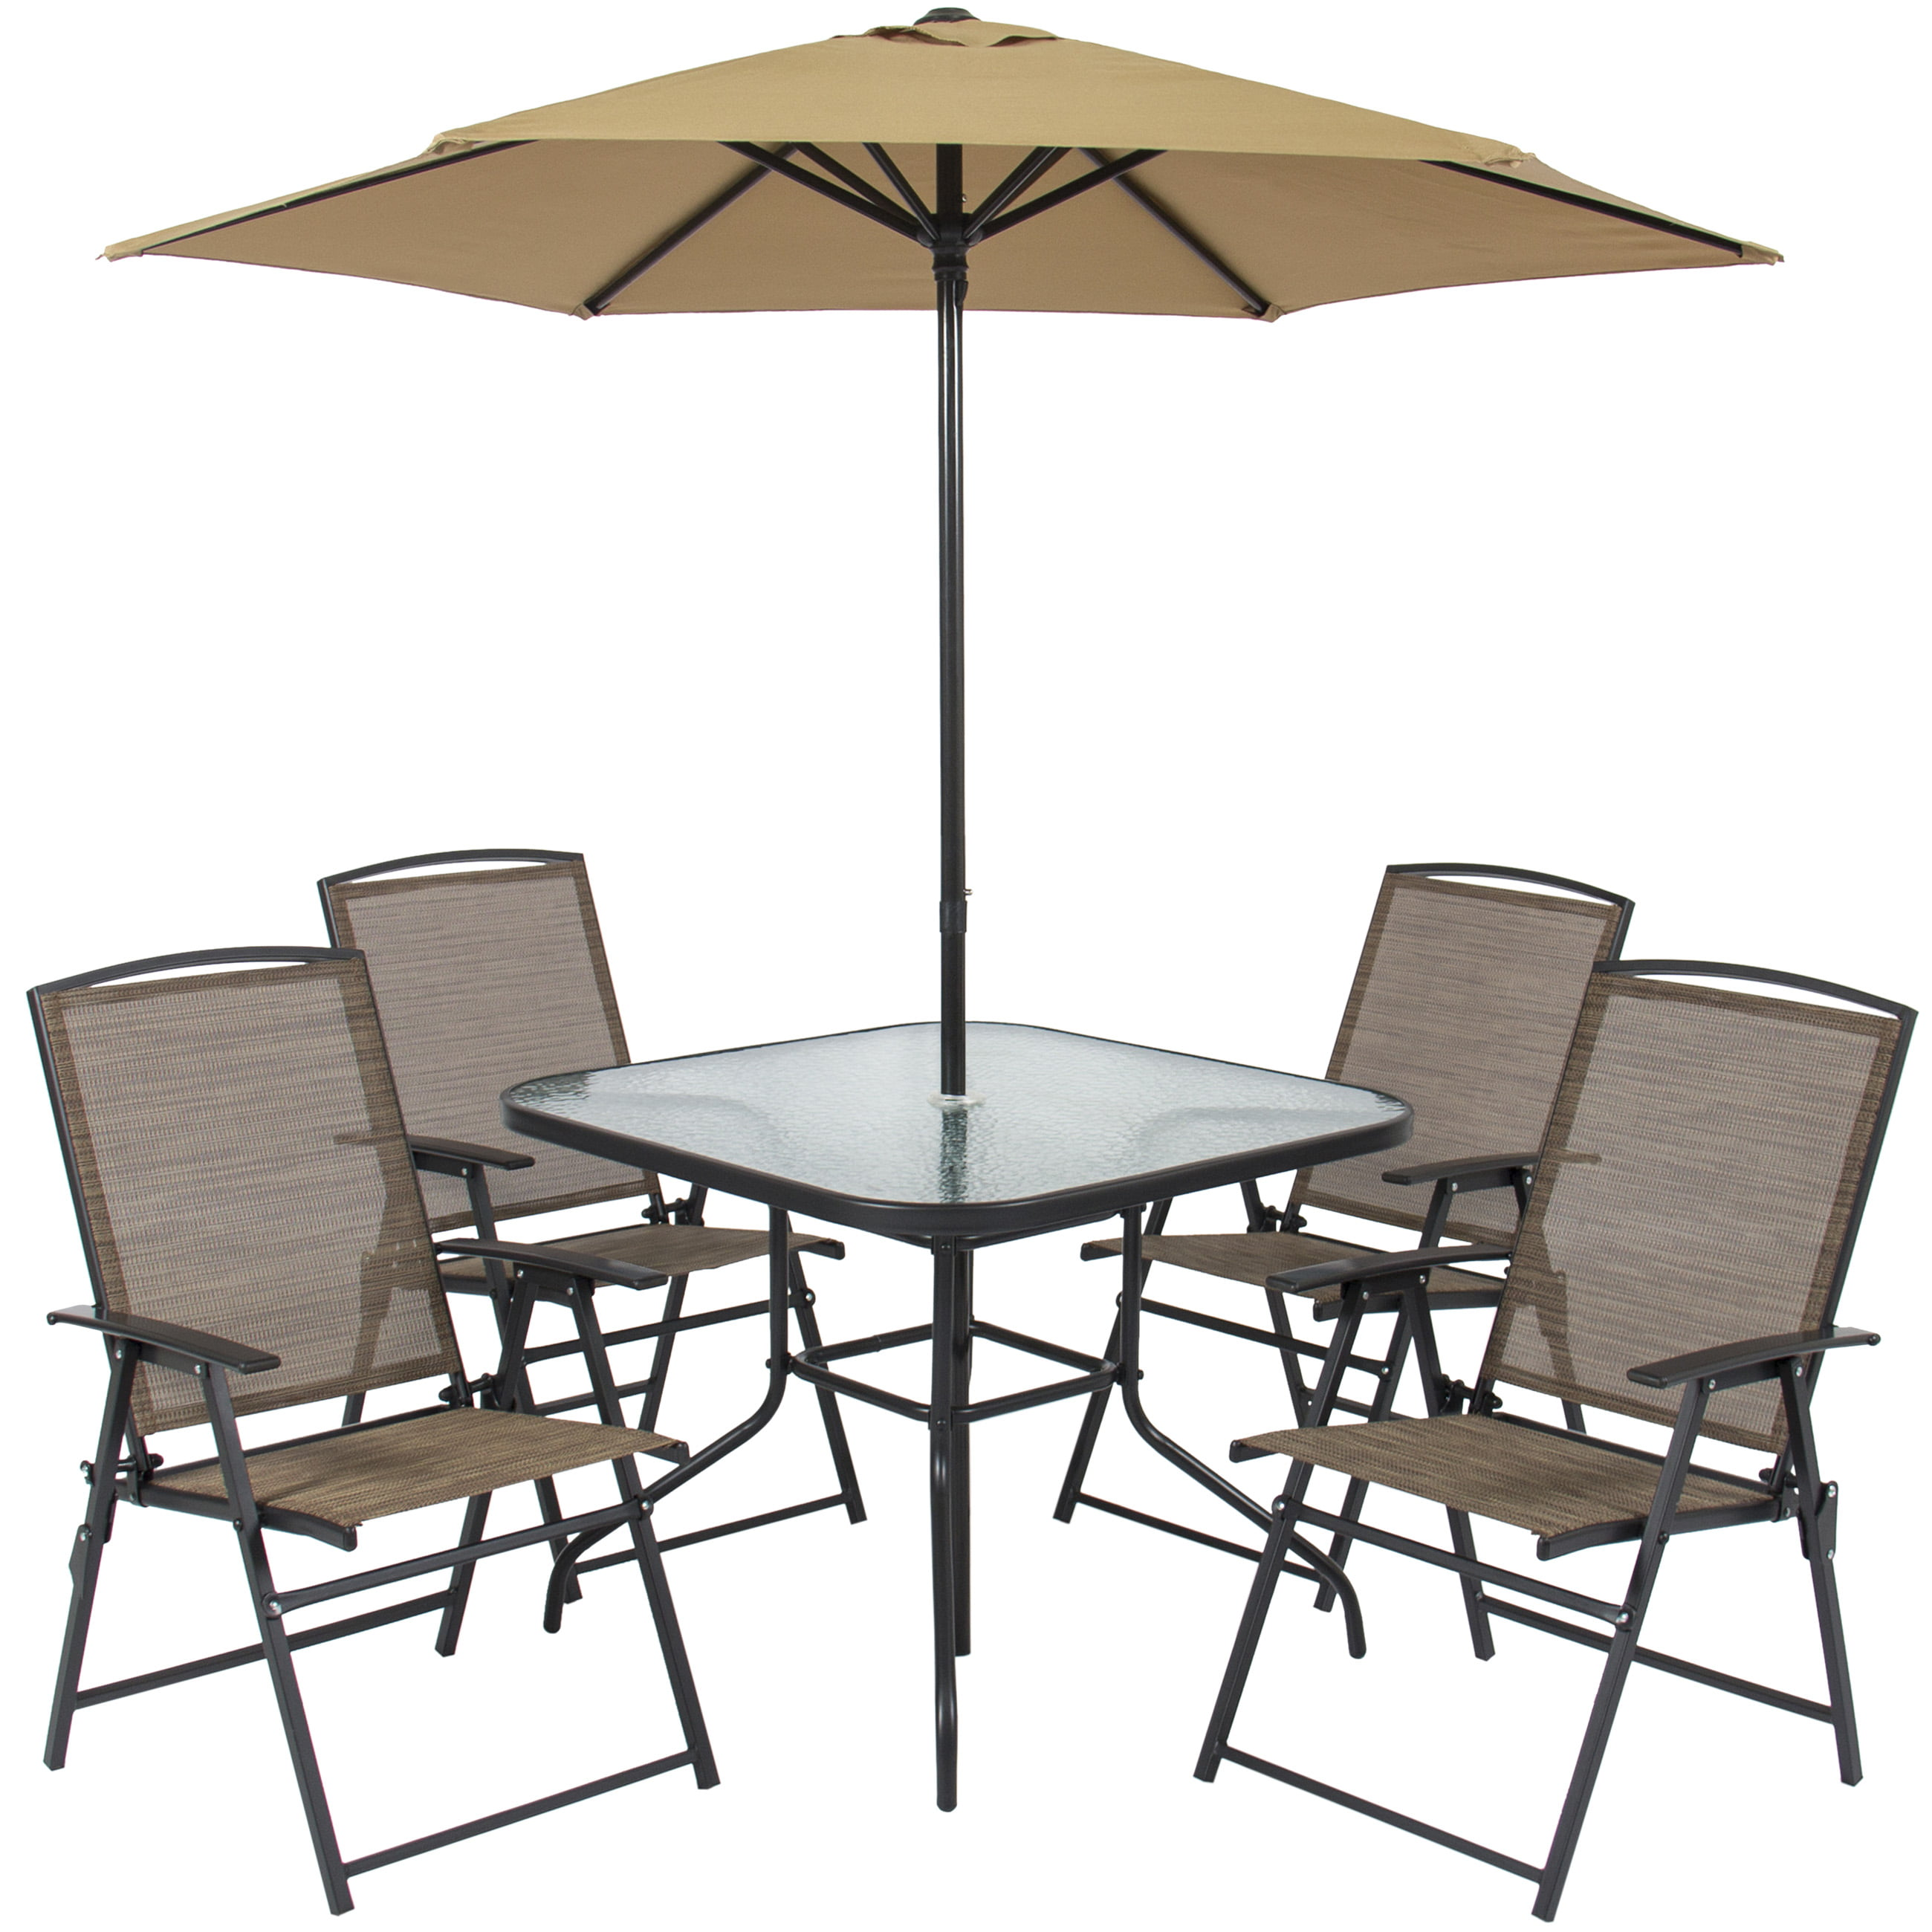 best choice products 6pc outdoor folding patio dining set w table 4 chairs umbrella and built in base walmartcom